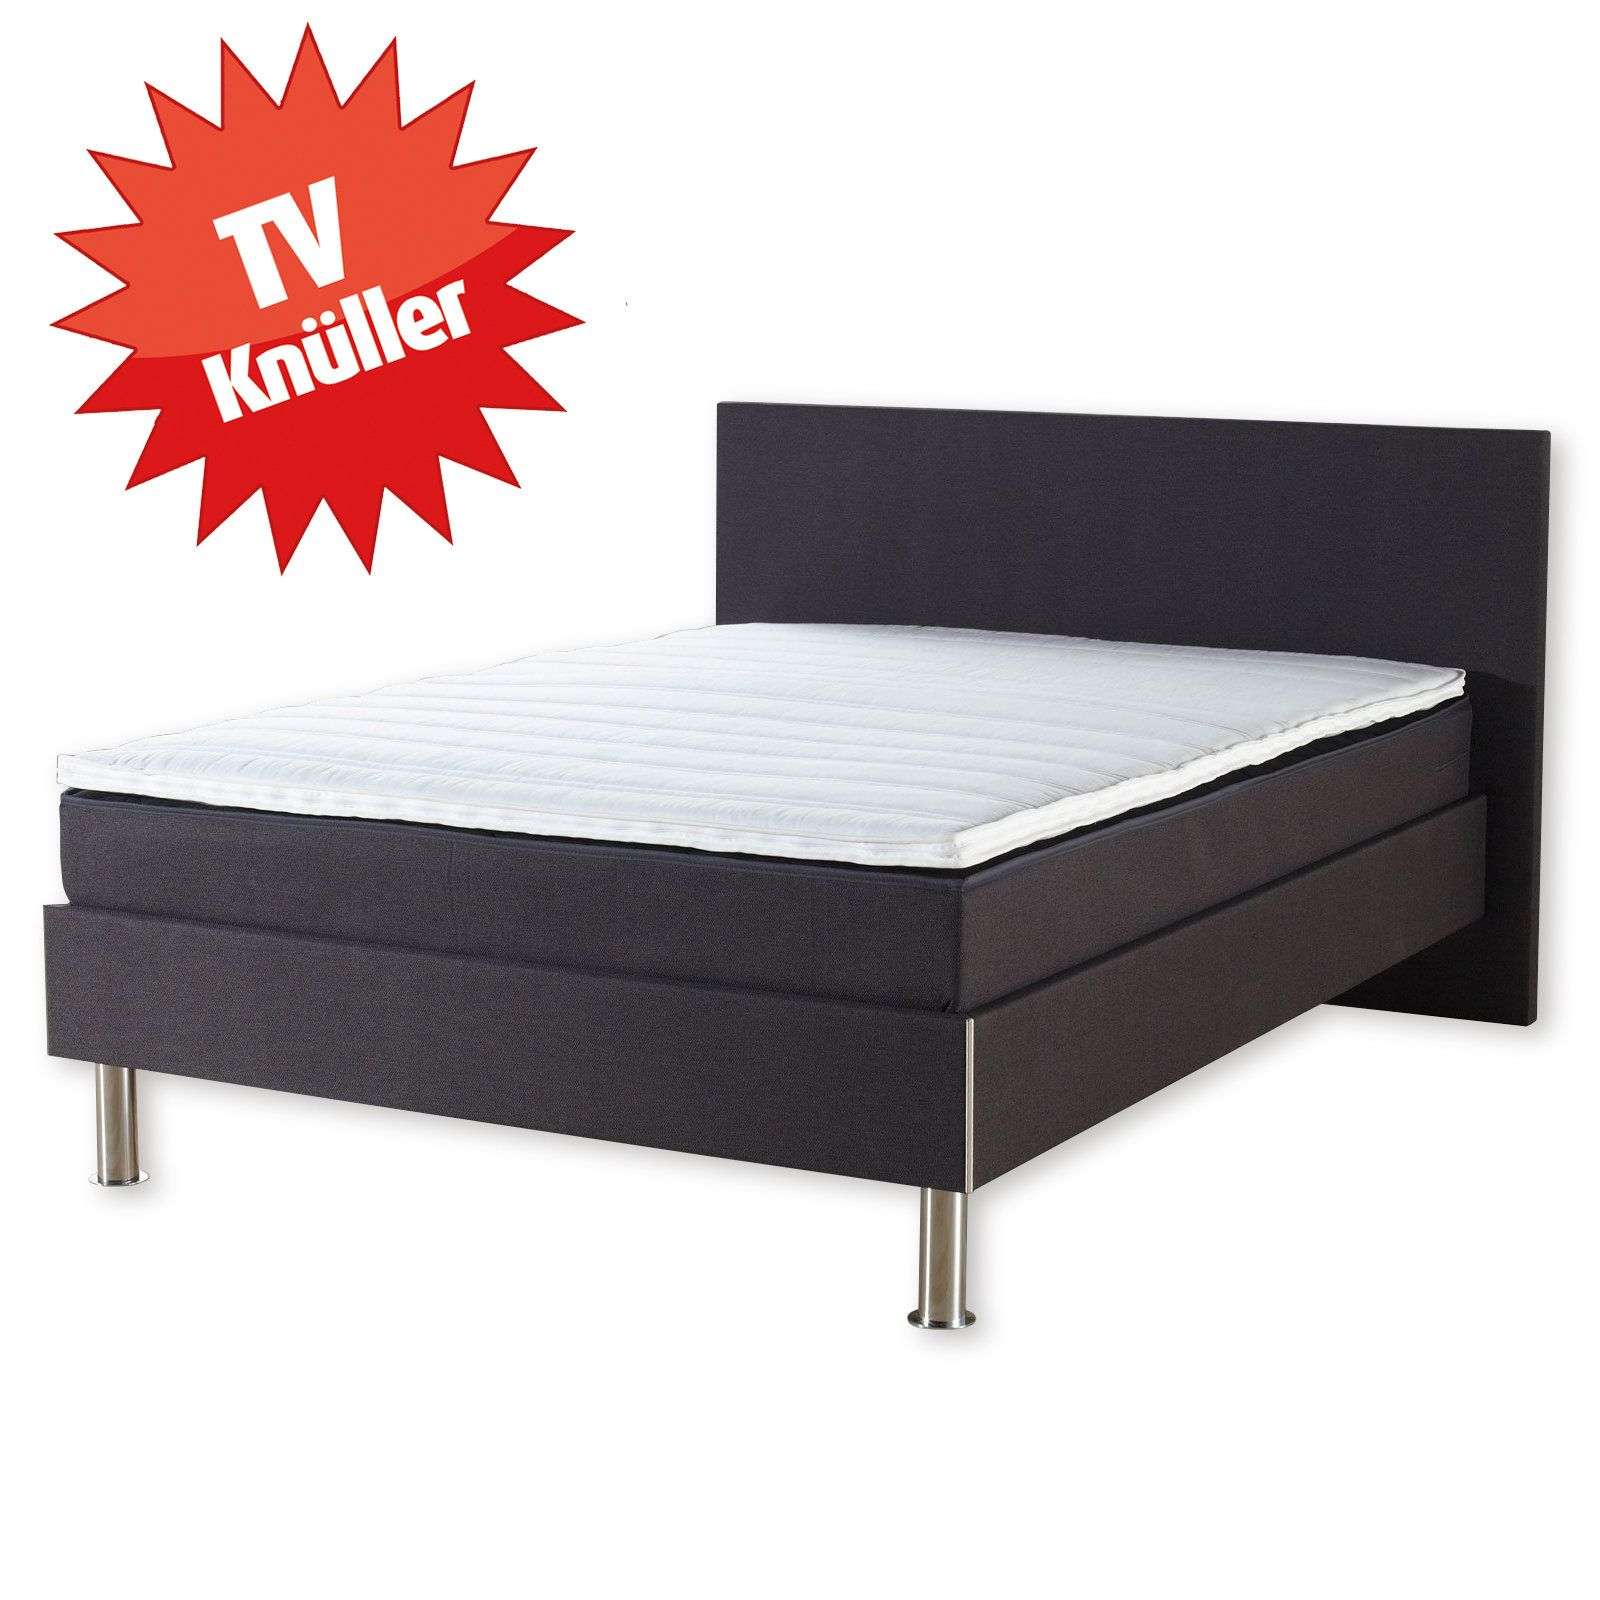 boxspringbett ramona bonell federkern anthrazit 140x200 cm h2 plugin firefox alt. Black Bedroom Furniture Sets. Home Design Ideas